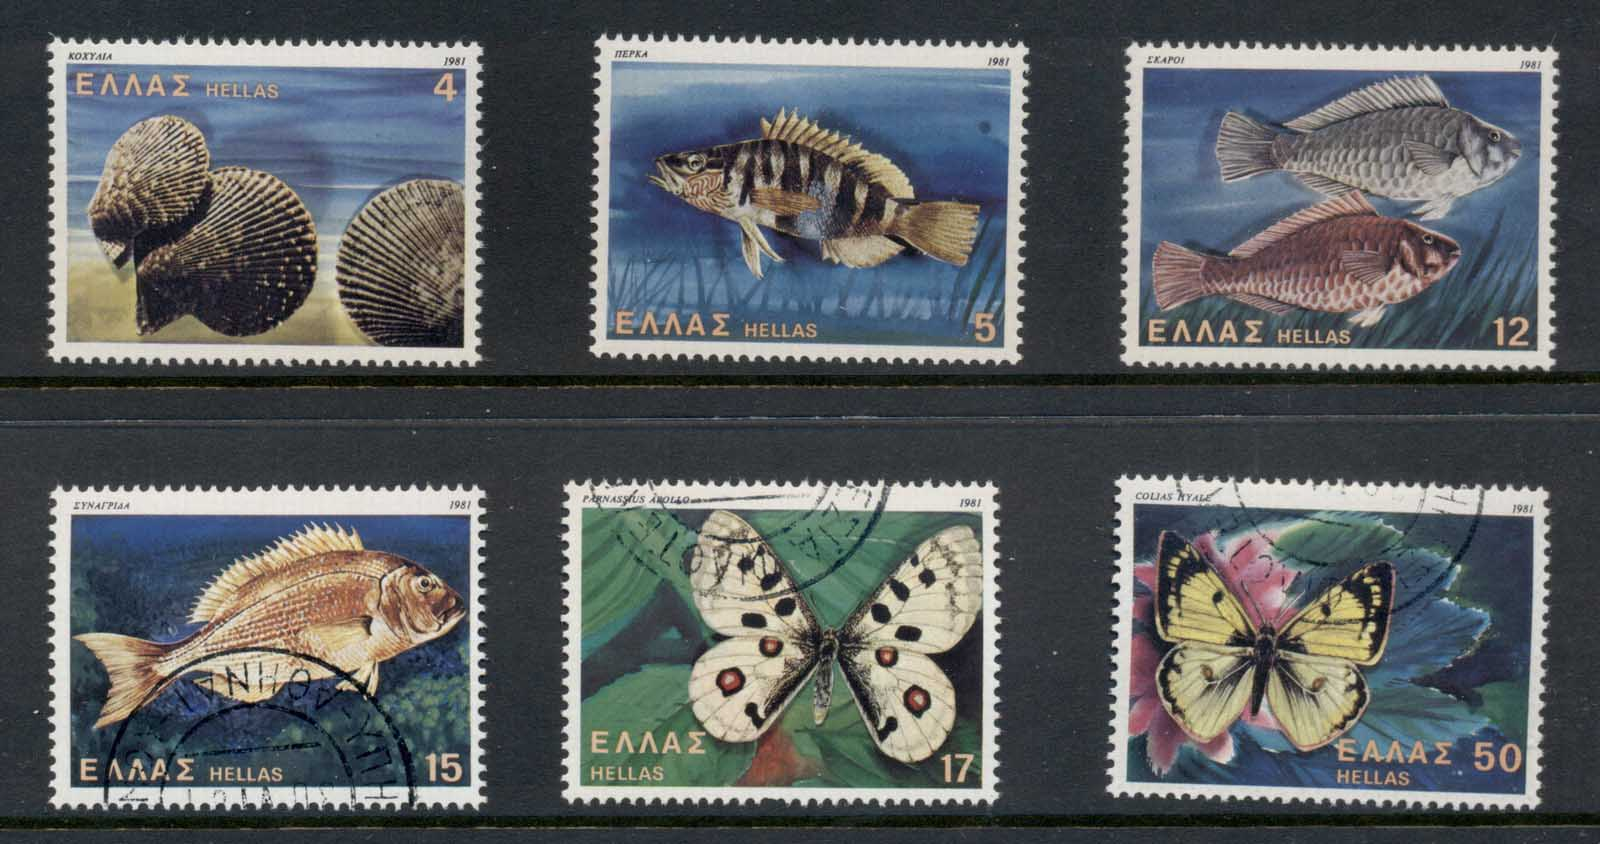 Greece 1981 Wildlife, Fish, Butterflies MUH/CTO